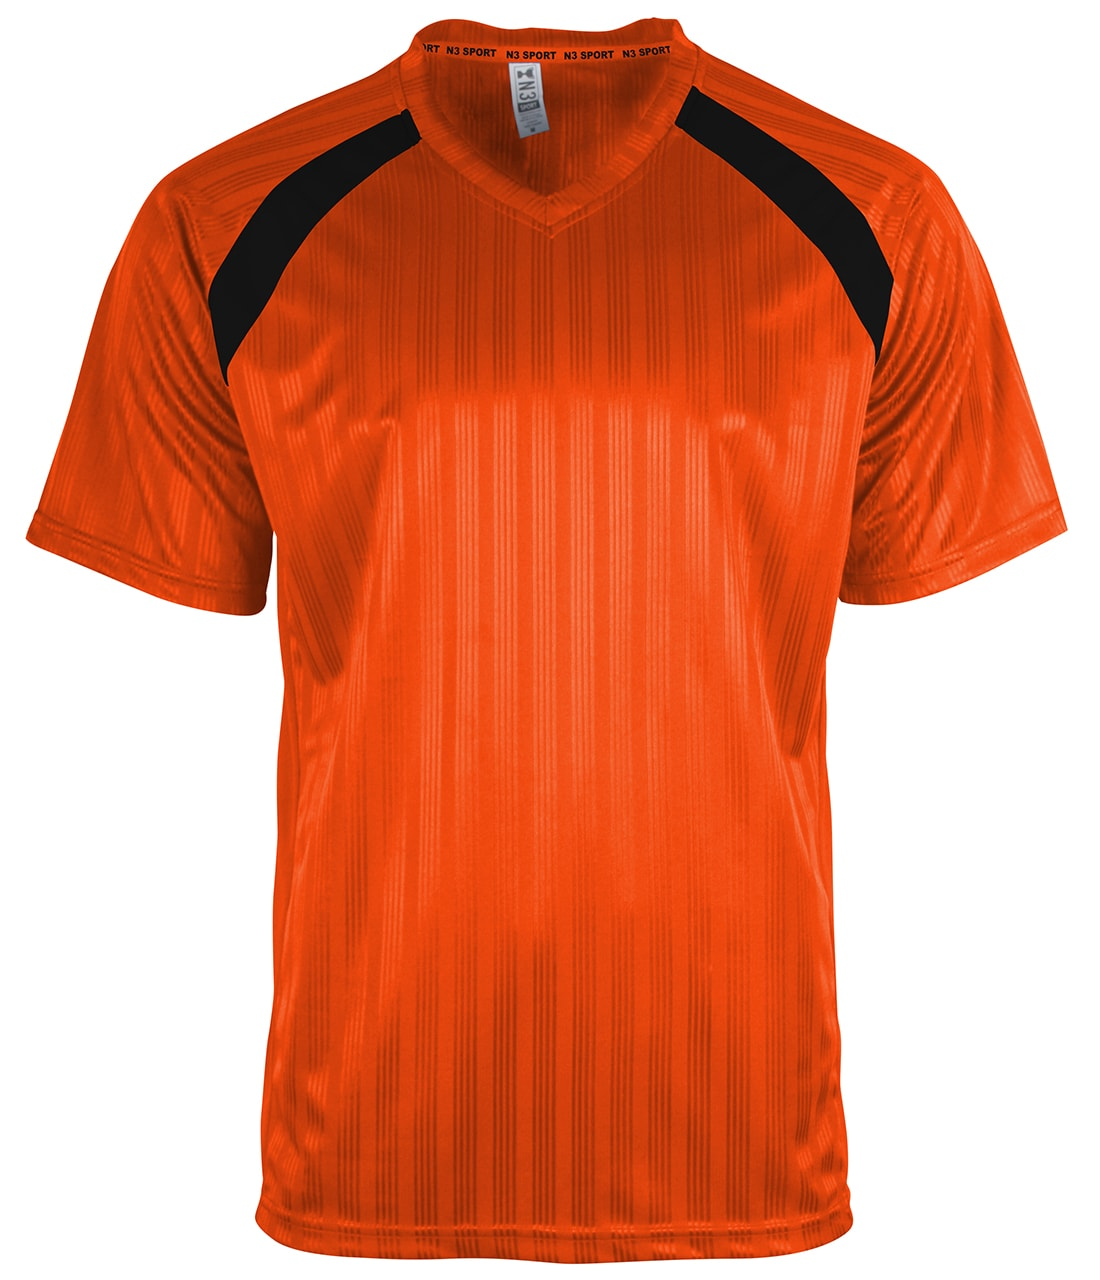 Picture of N3 Sport Adult Soccer